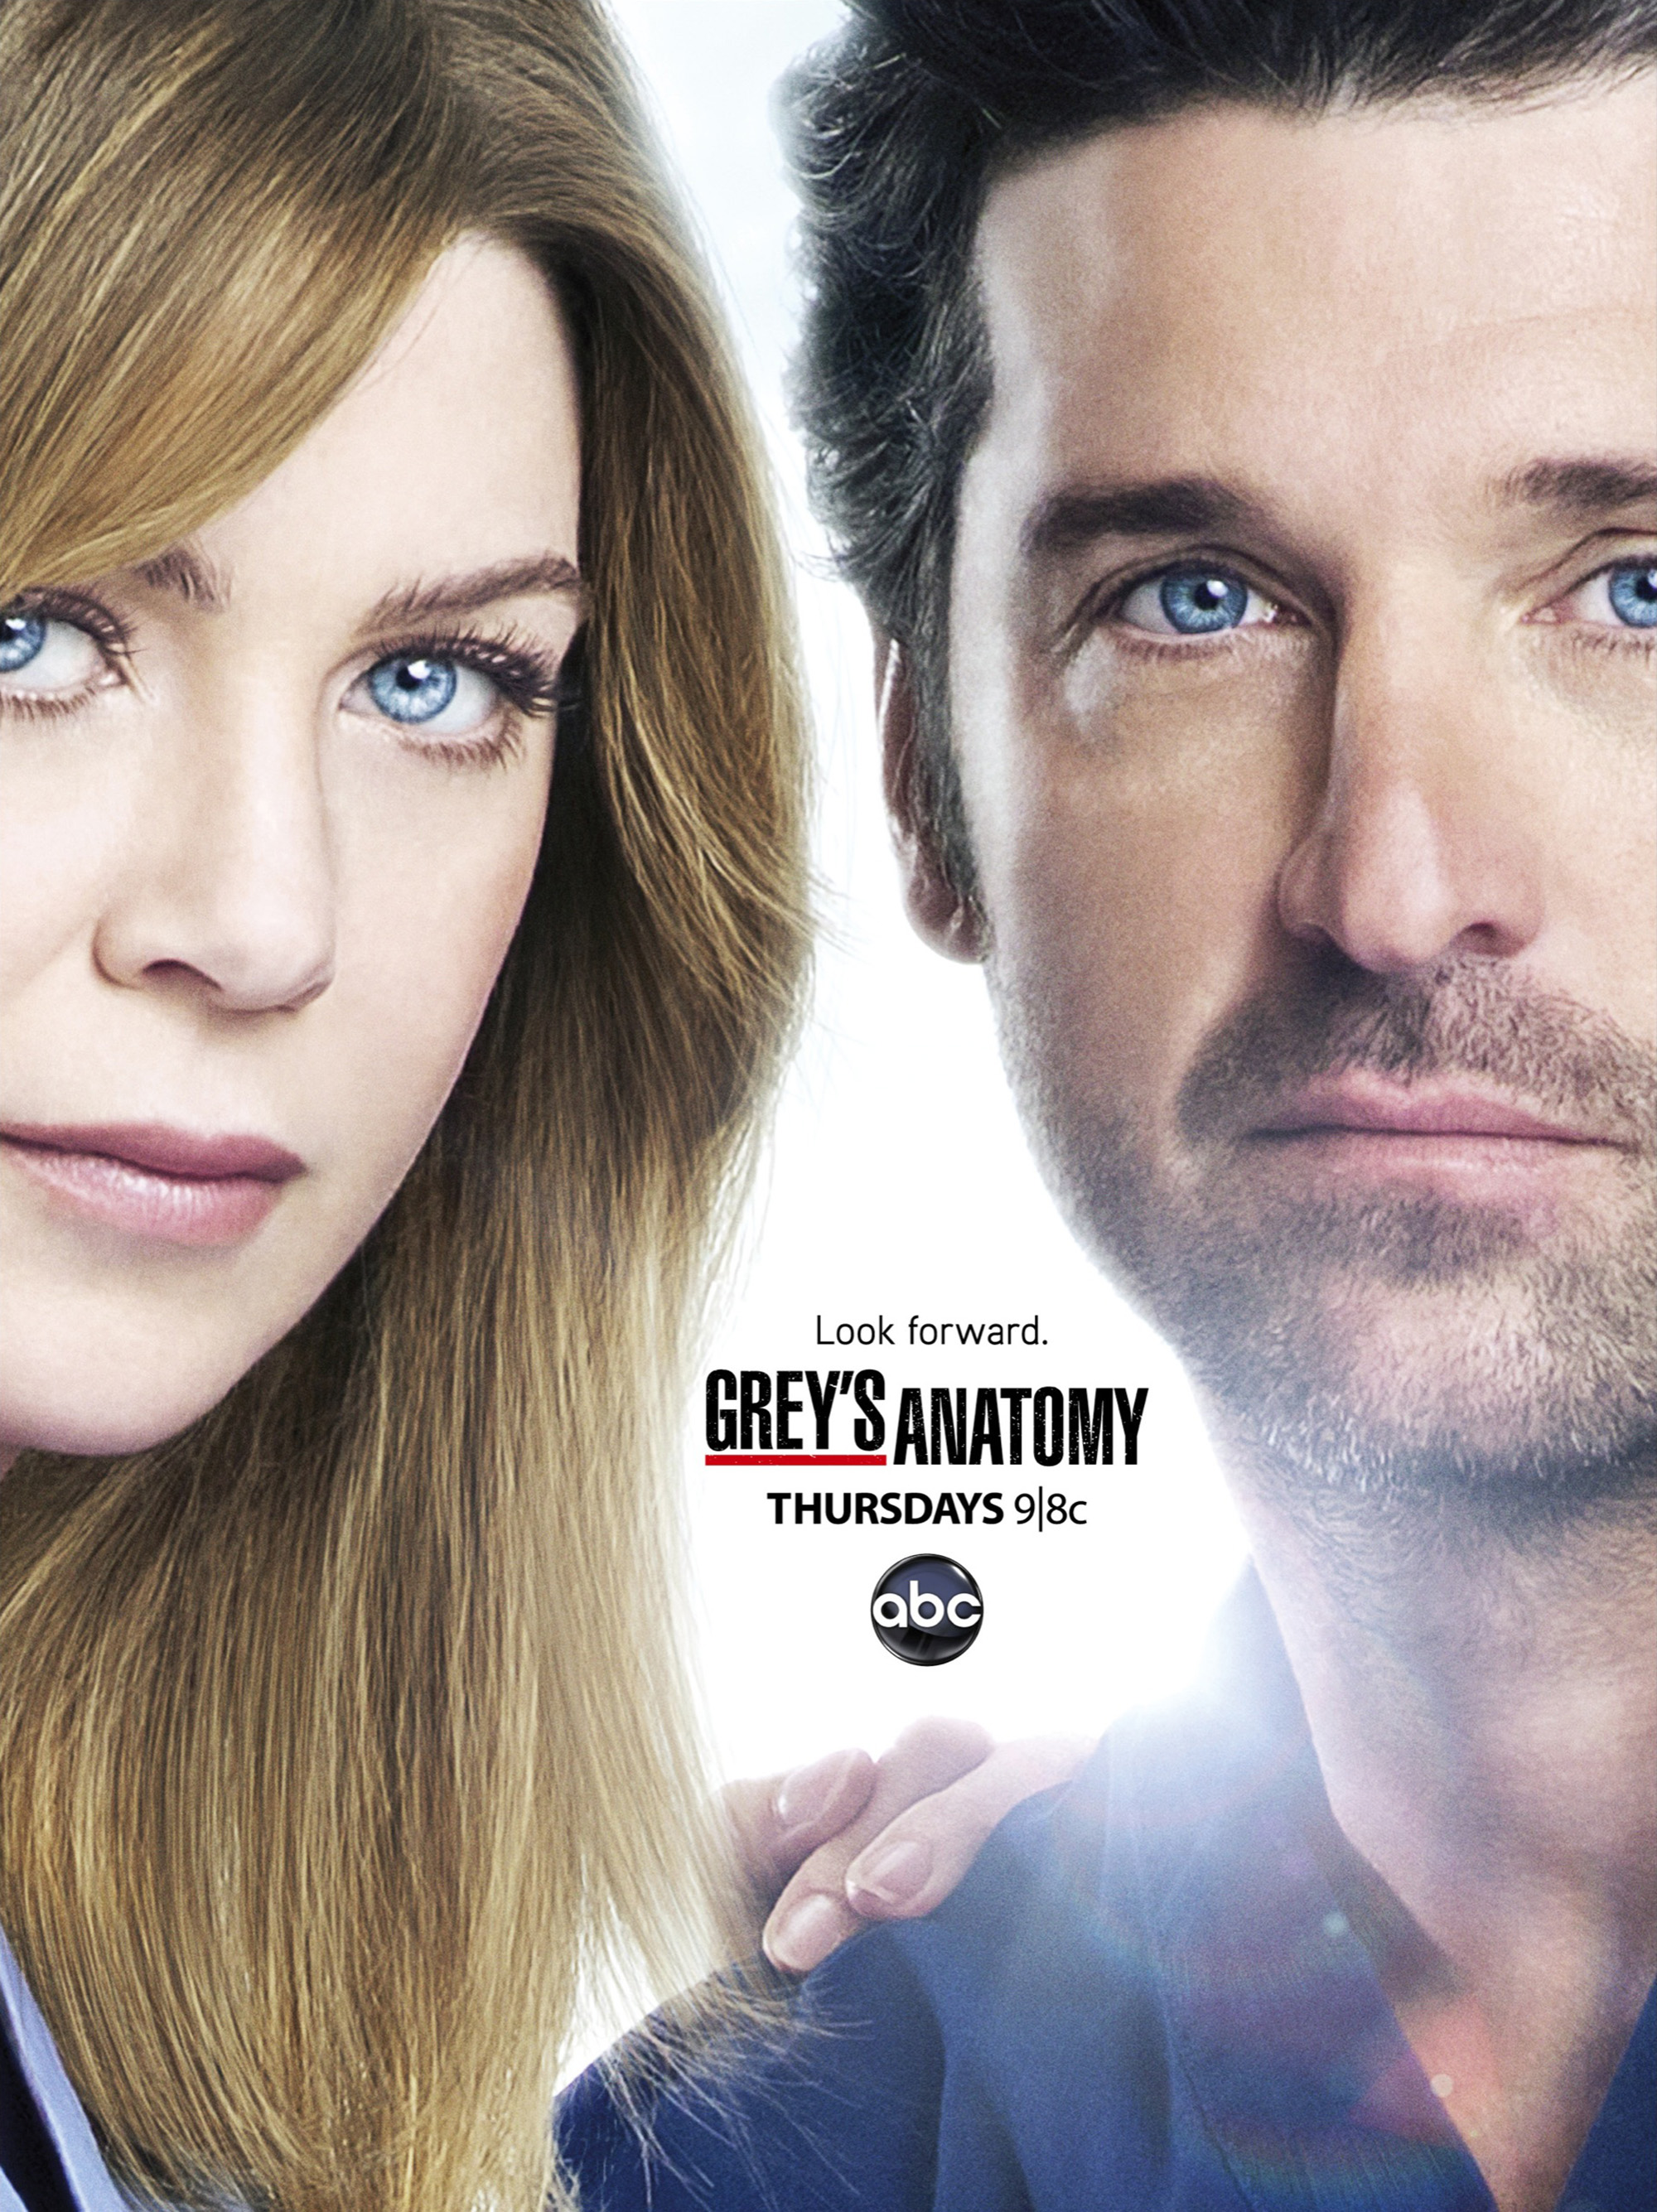 Greys-Anatomy-S09-1-dvdbash | DVDbash